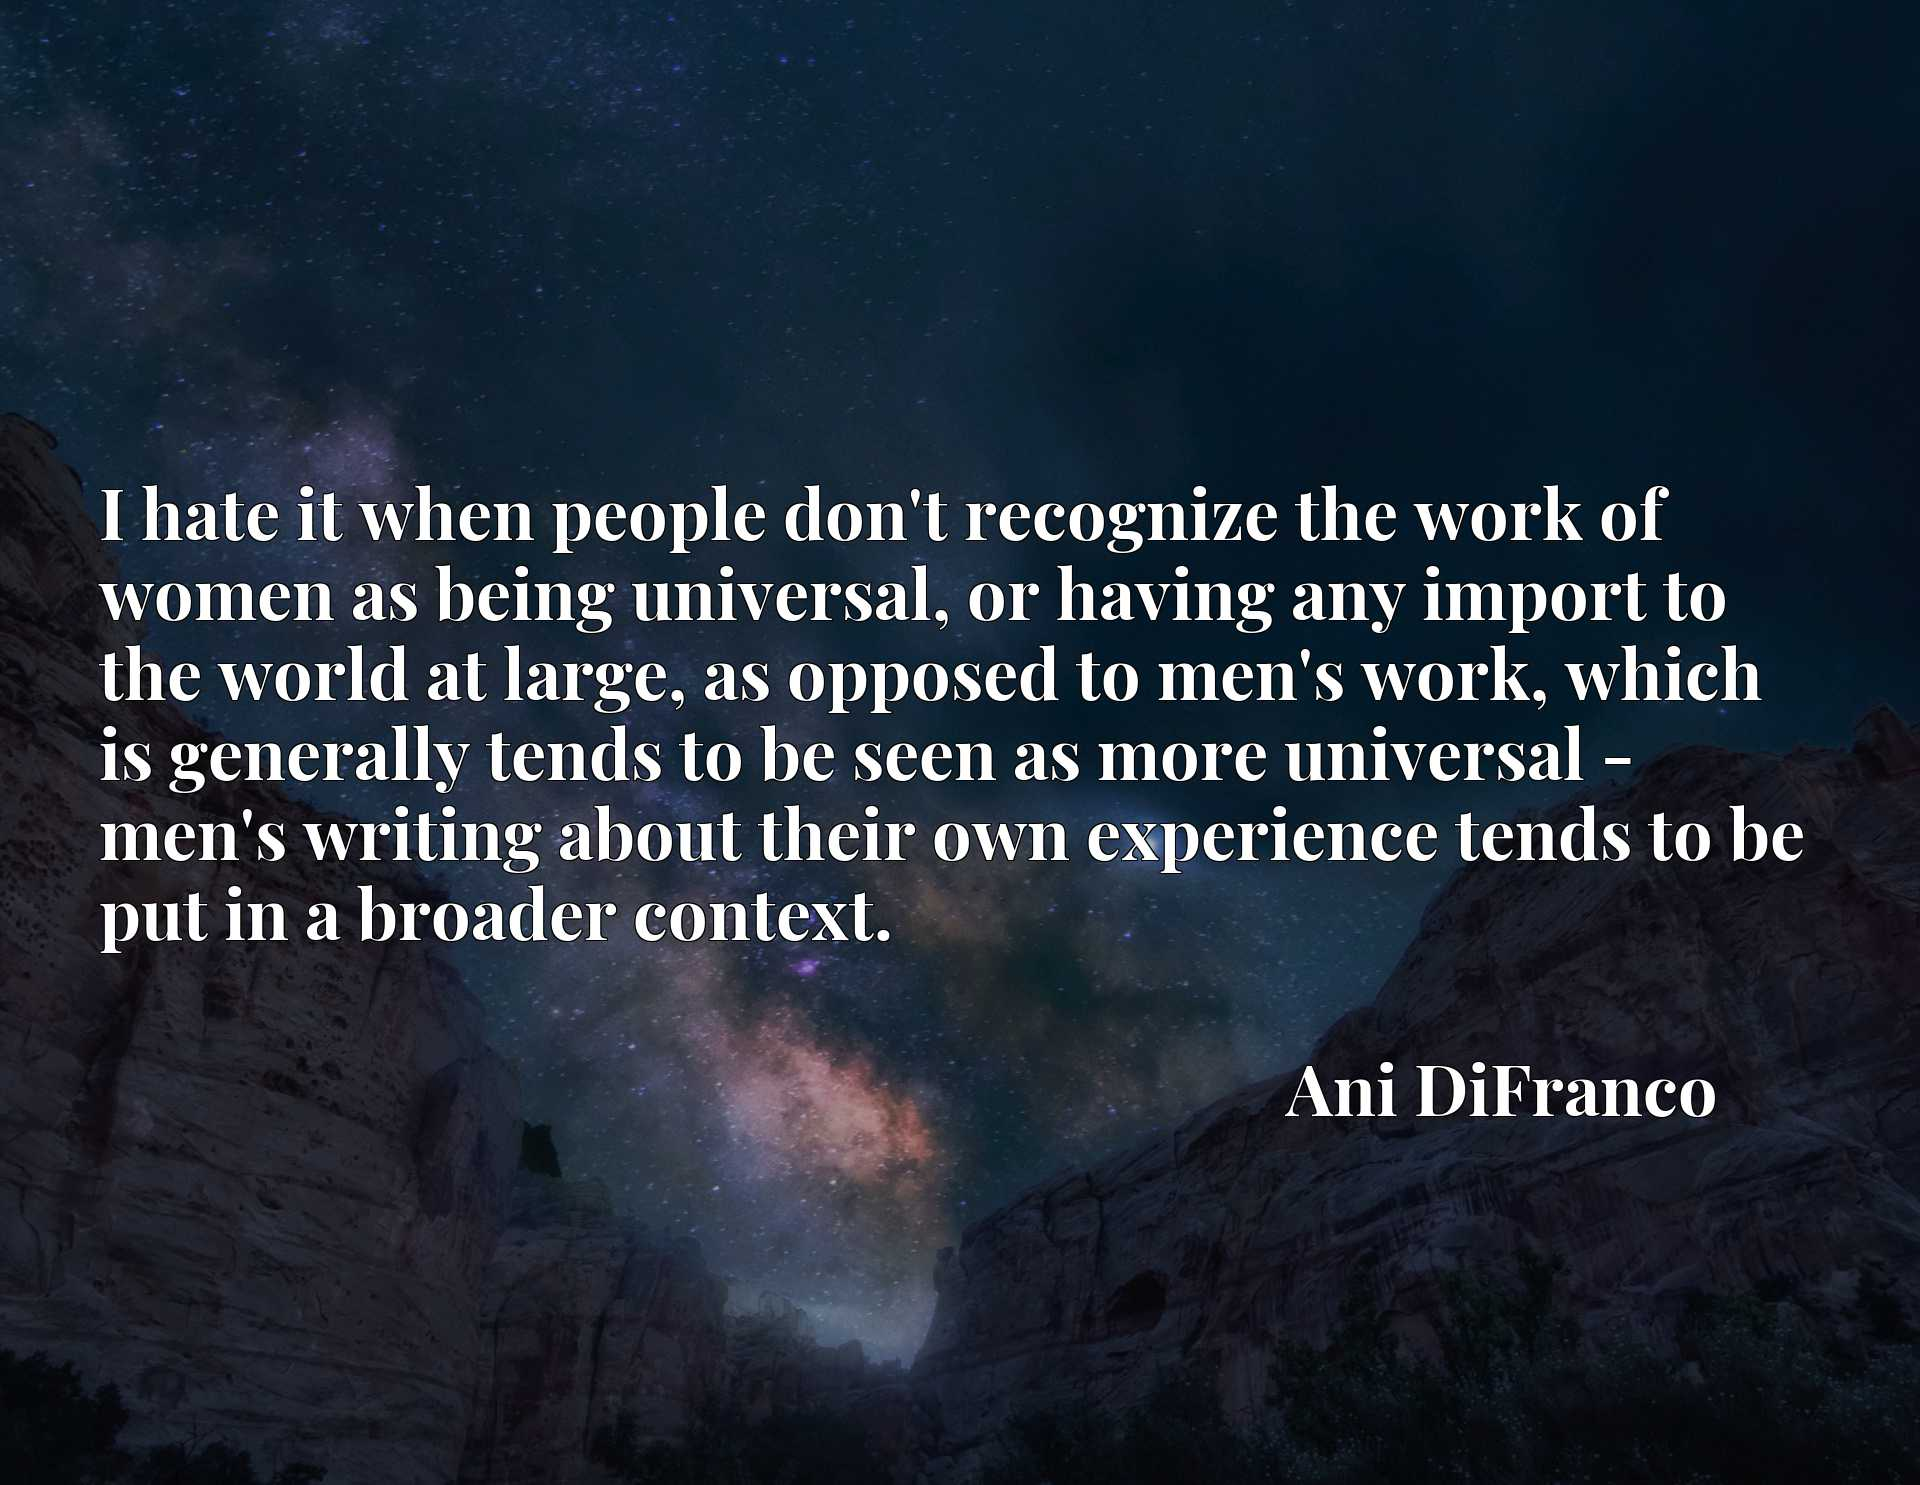 I hate it when people don't recognize the work of women as being universal, or having any import to the world at large, as opposed to men's work, which is generally tends to be seen as more universal - men's writing about their own experience tends to be put in a broader context.